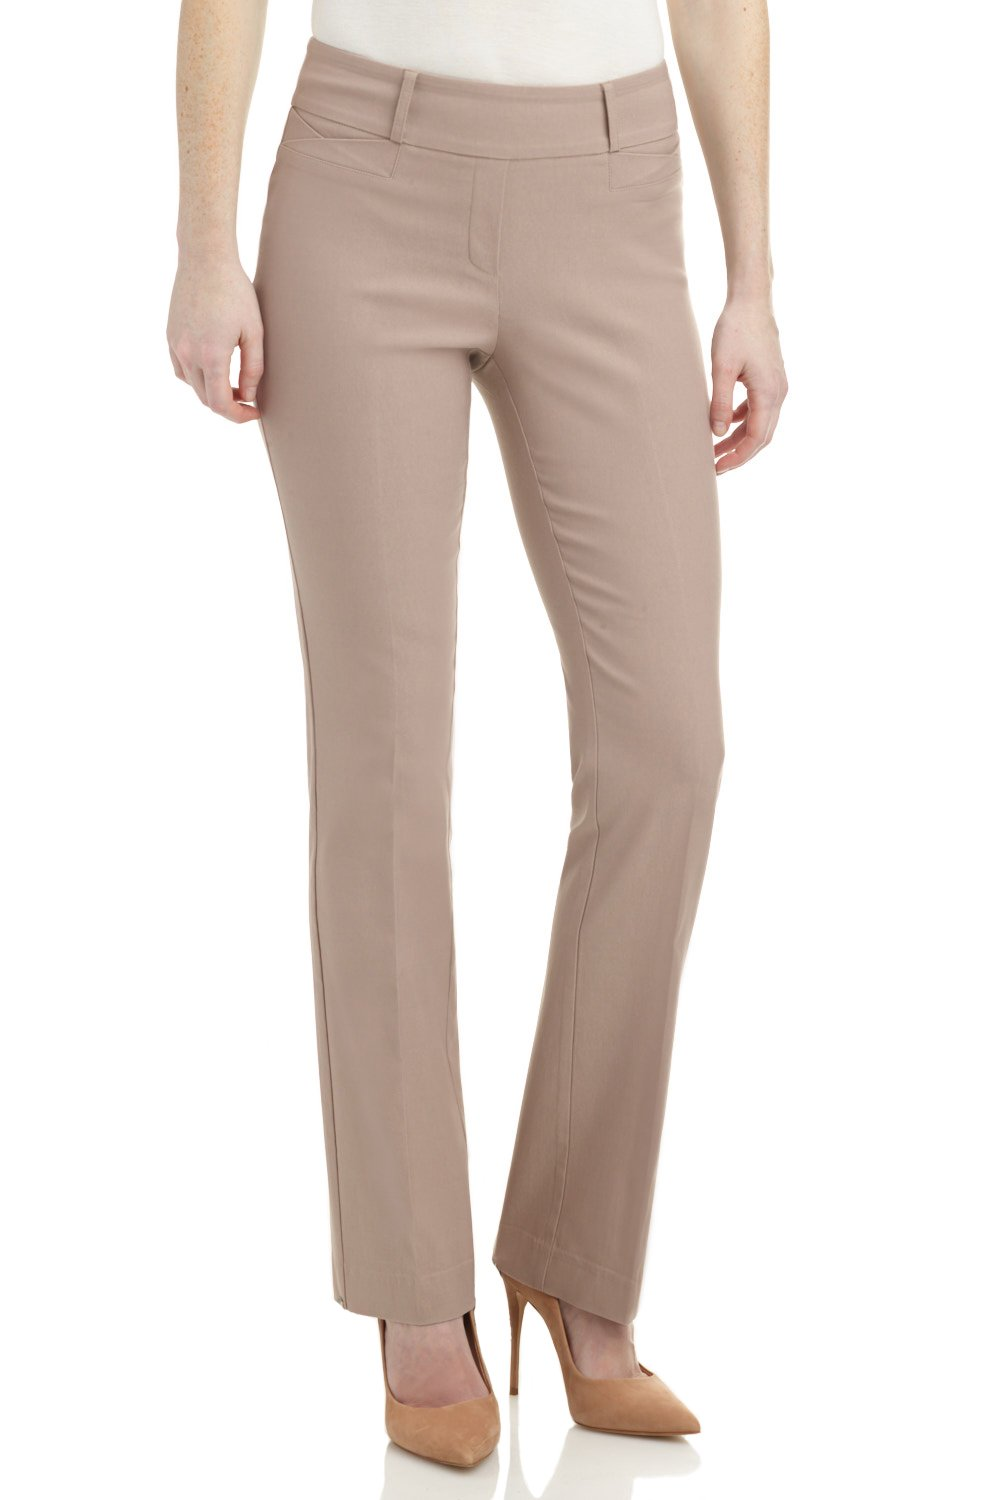 Rekucci Women's Ease in to Comfort Fit Barely Bootcut Stretch Pants (10SHORT,Khaki)